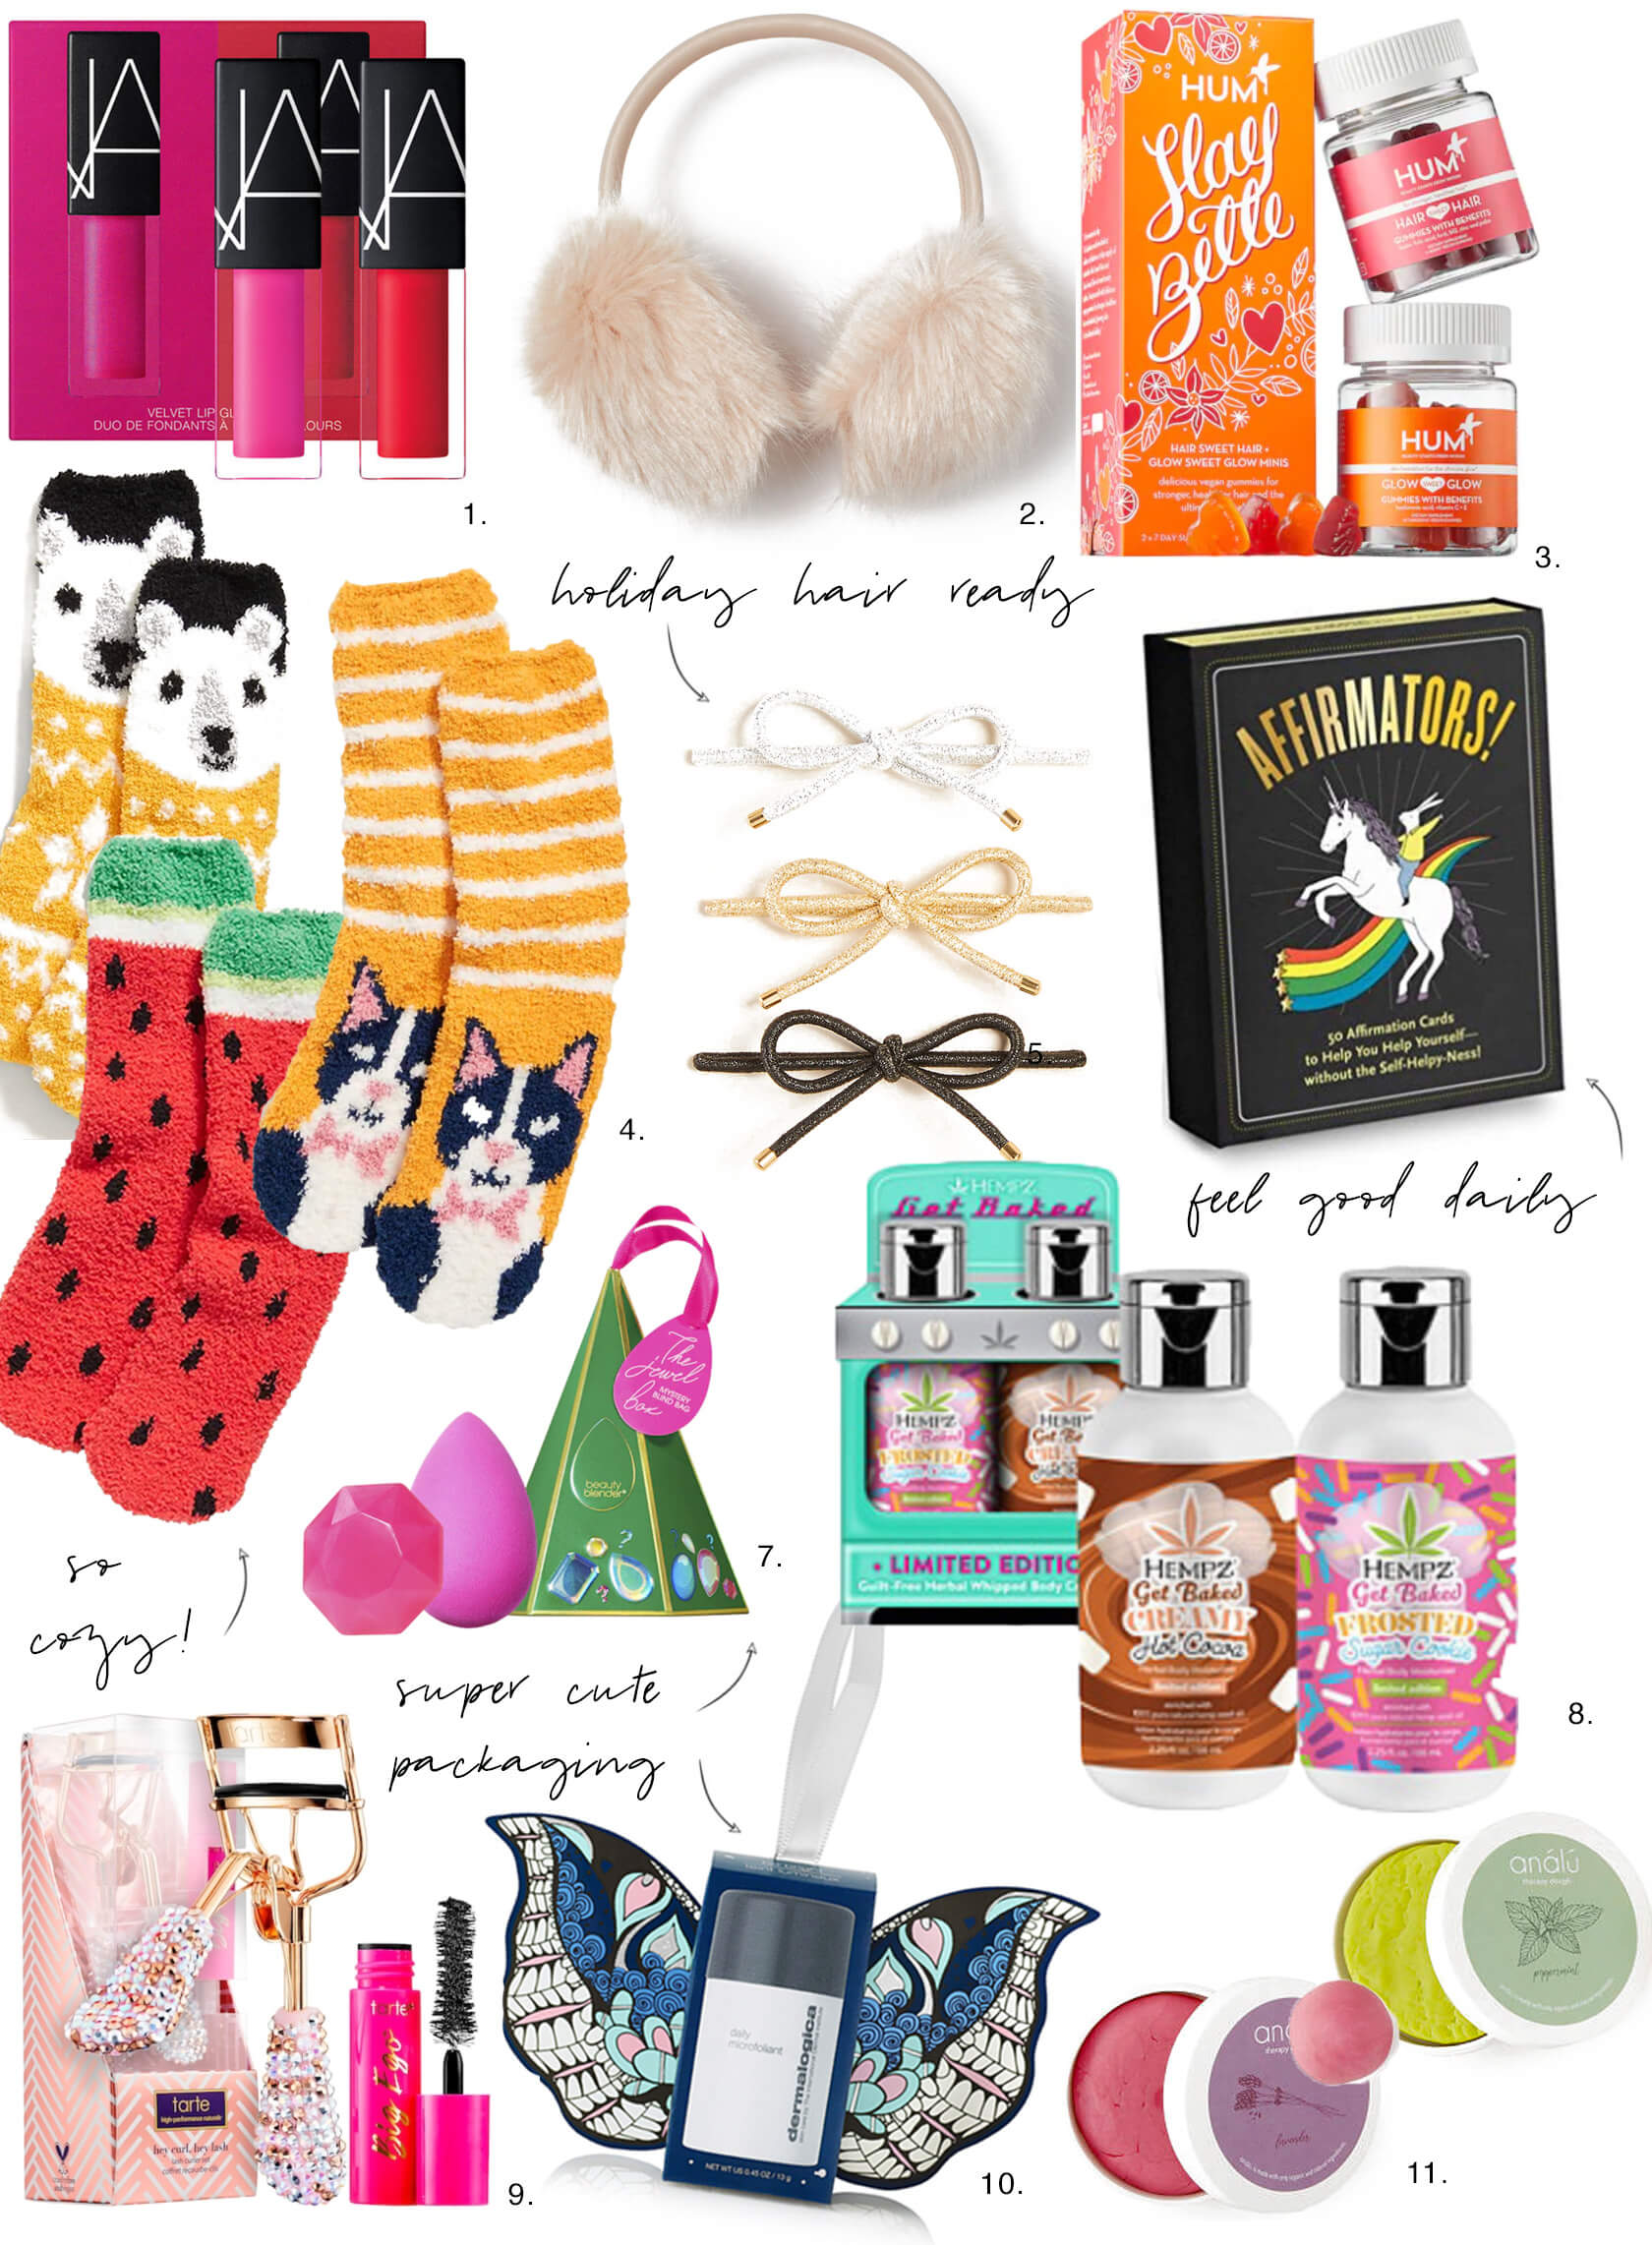 Sydne Style shows stocking stuffers for holiday gift guide ideas under $20